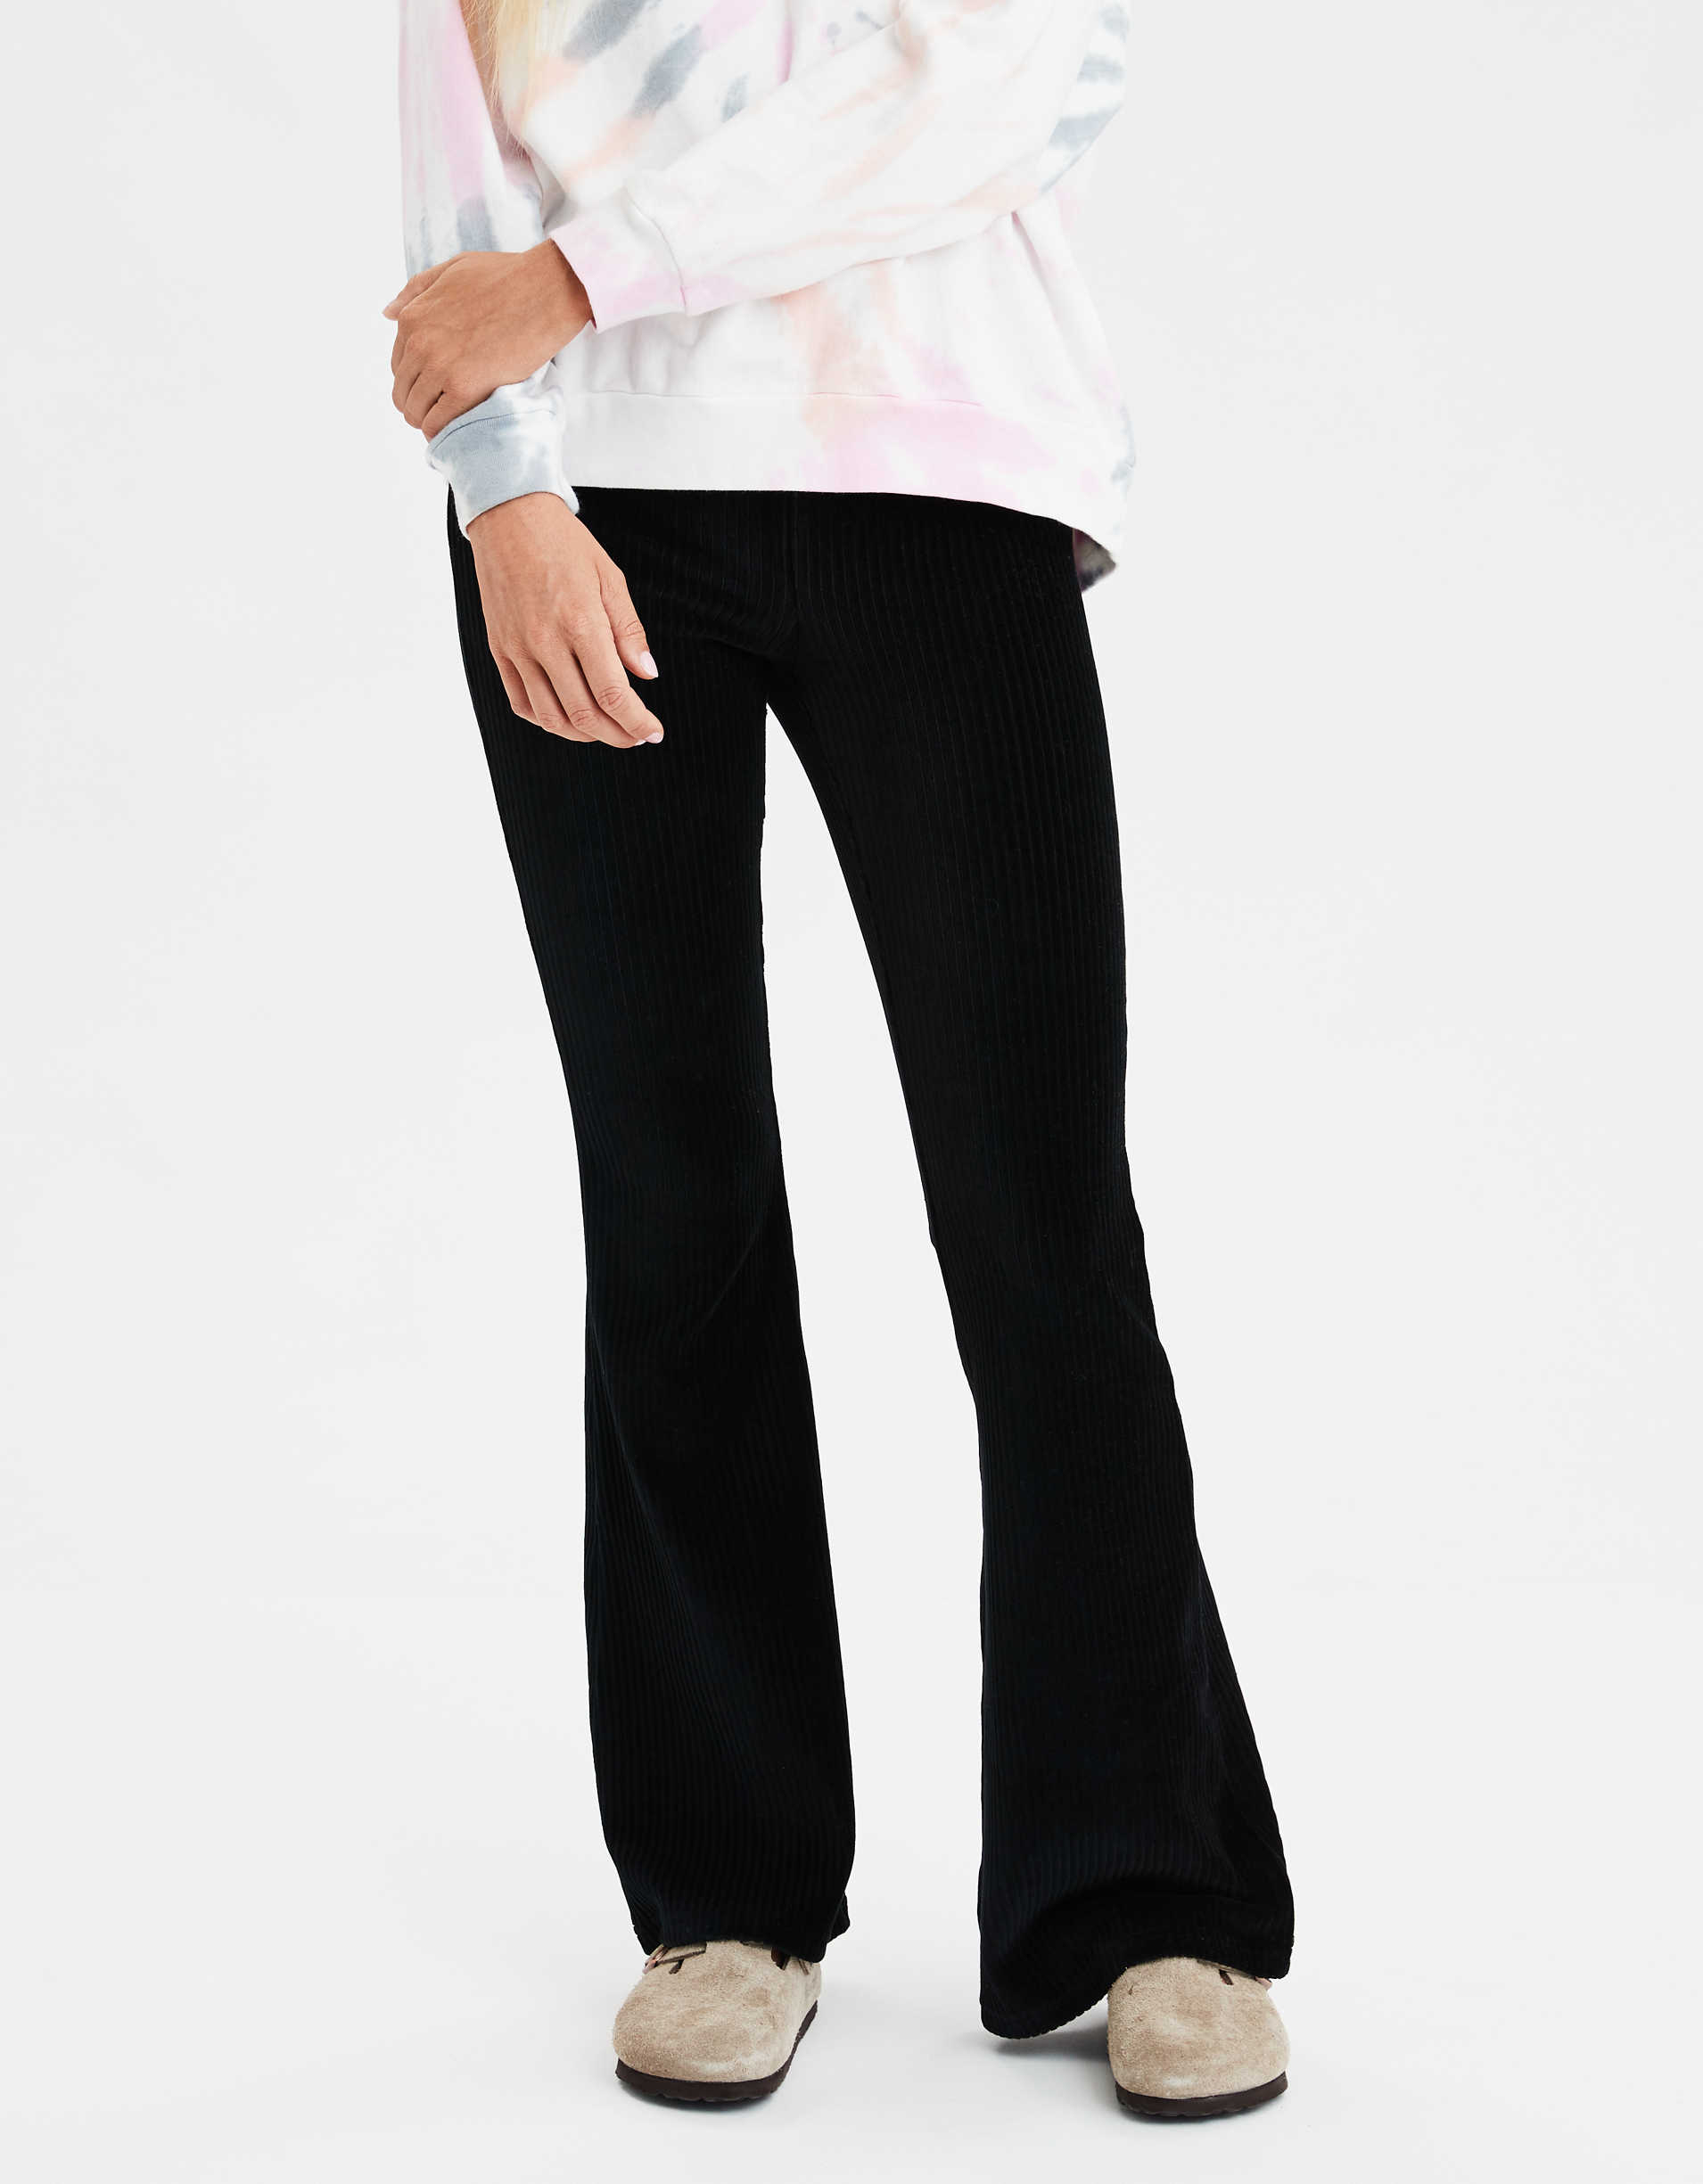 AEO Super High-Waisted Corduroy Flare Legging